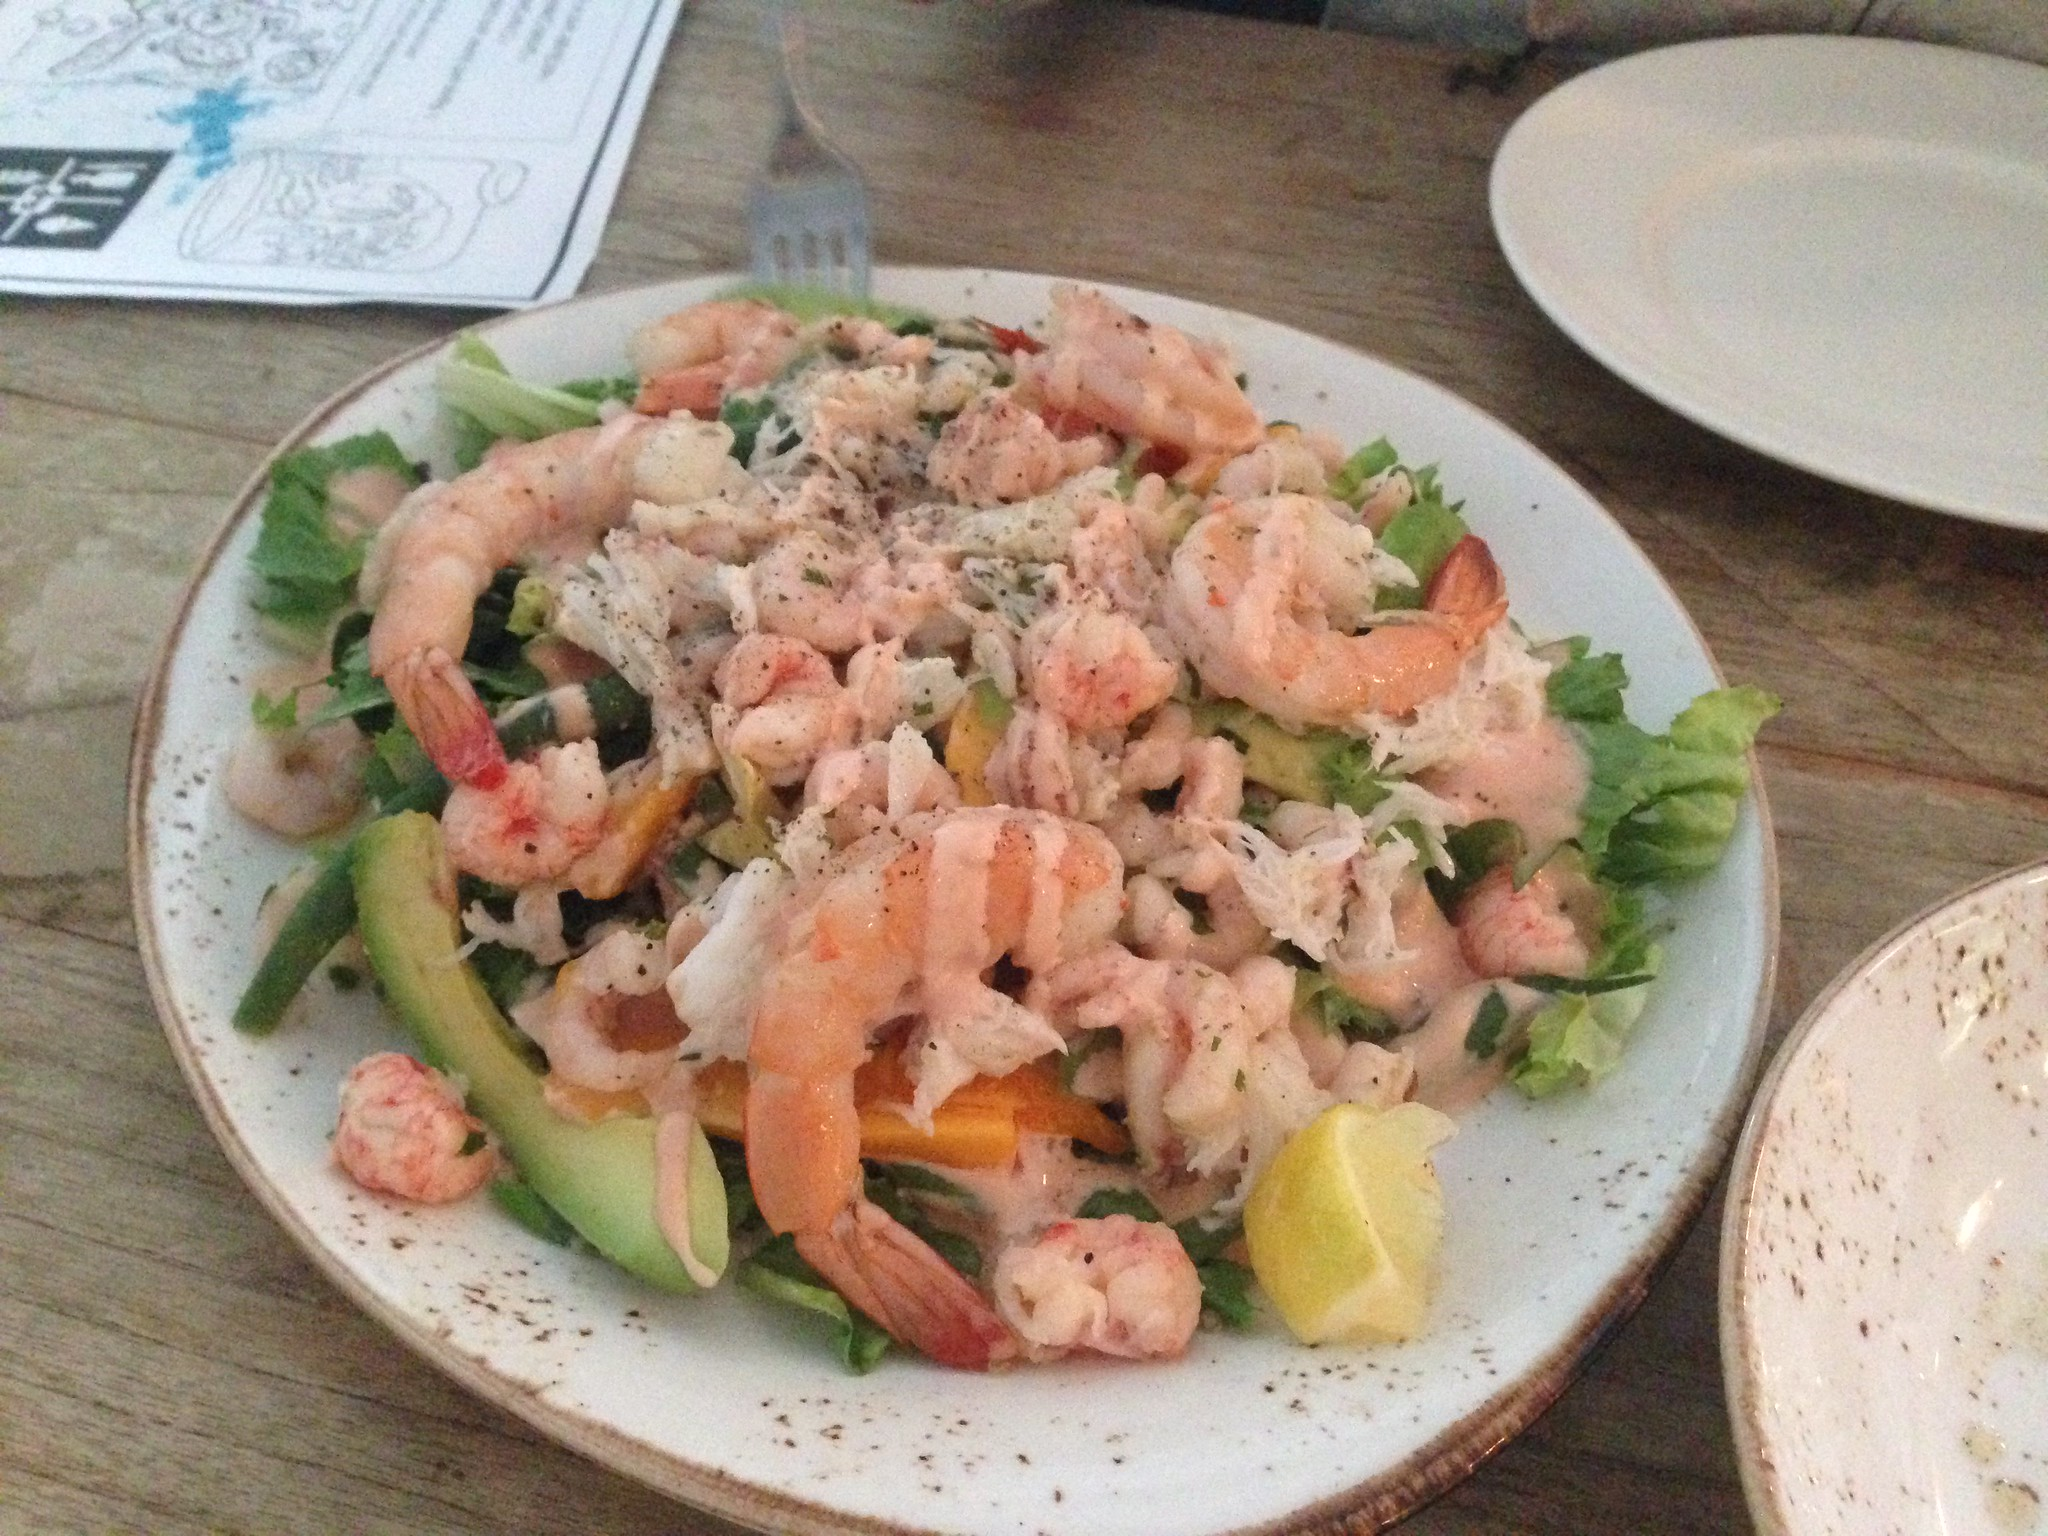 Crab Louie Salad - photo by T.Tseng under CC BY 2.0